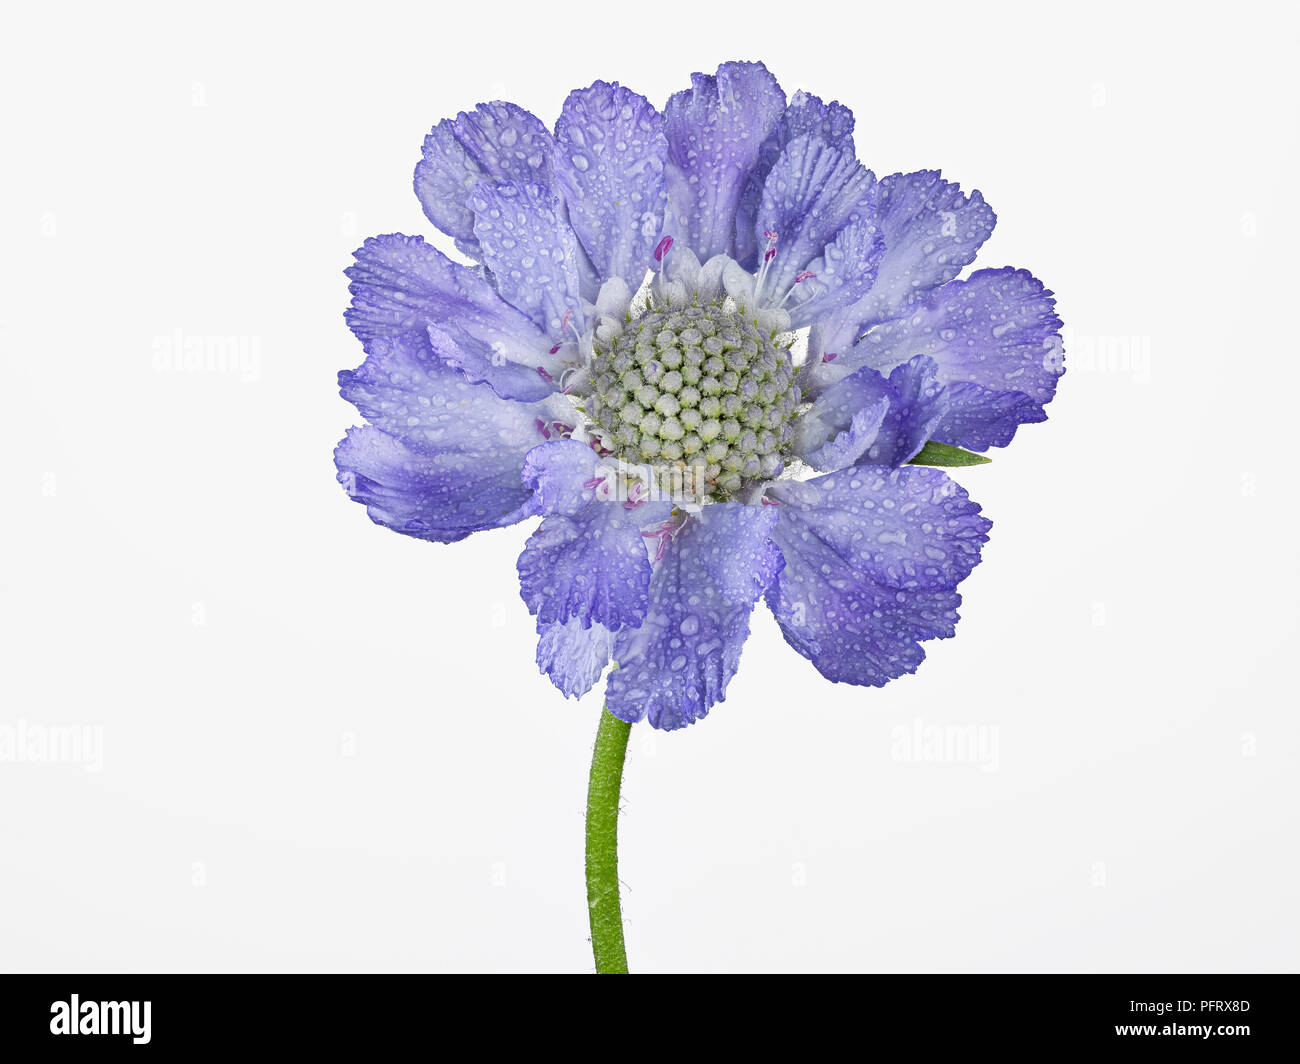 Scabious - Stock Image